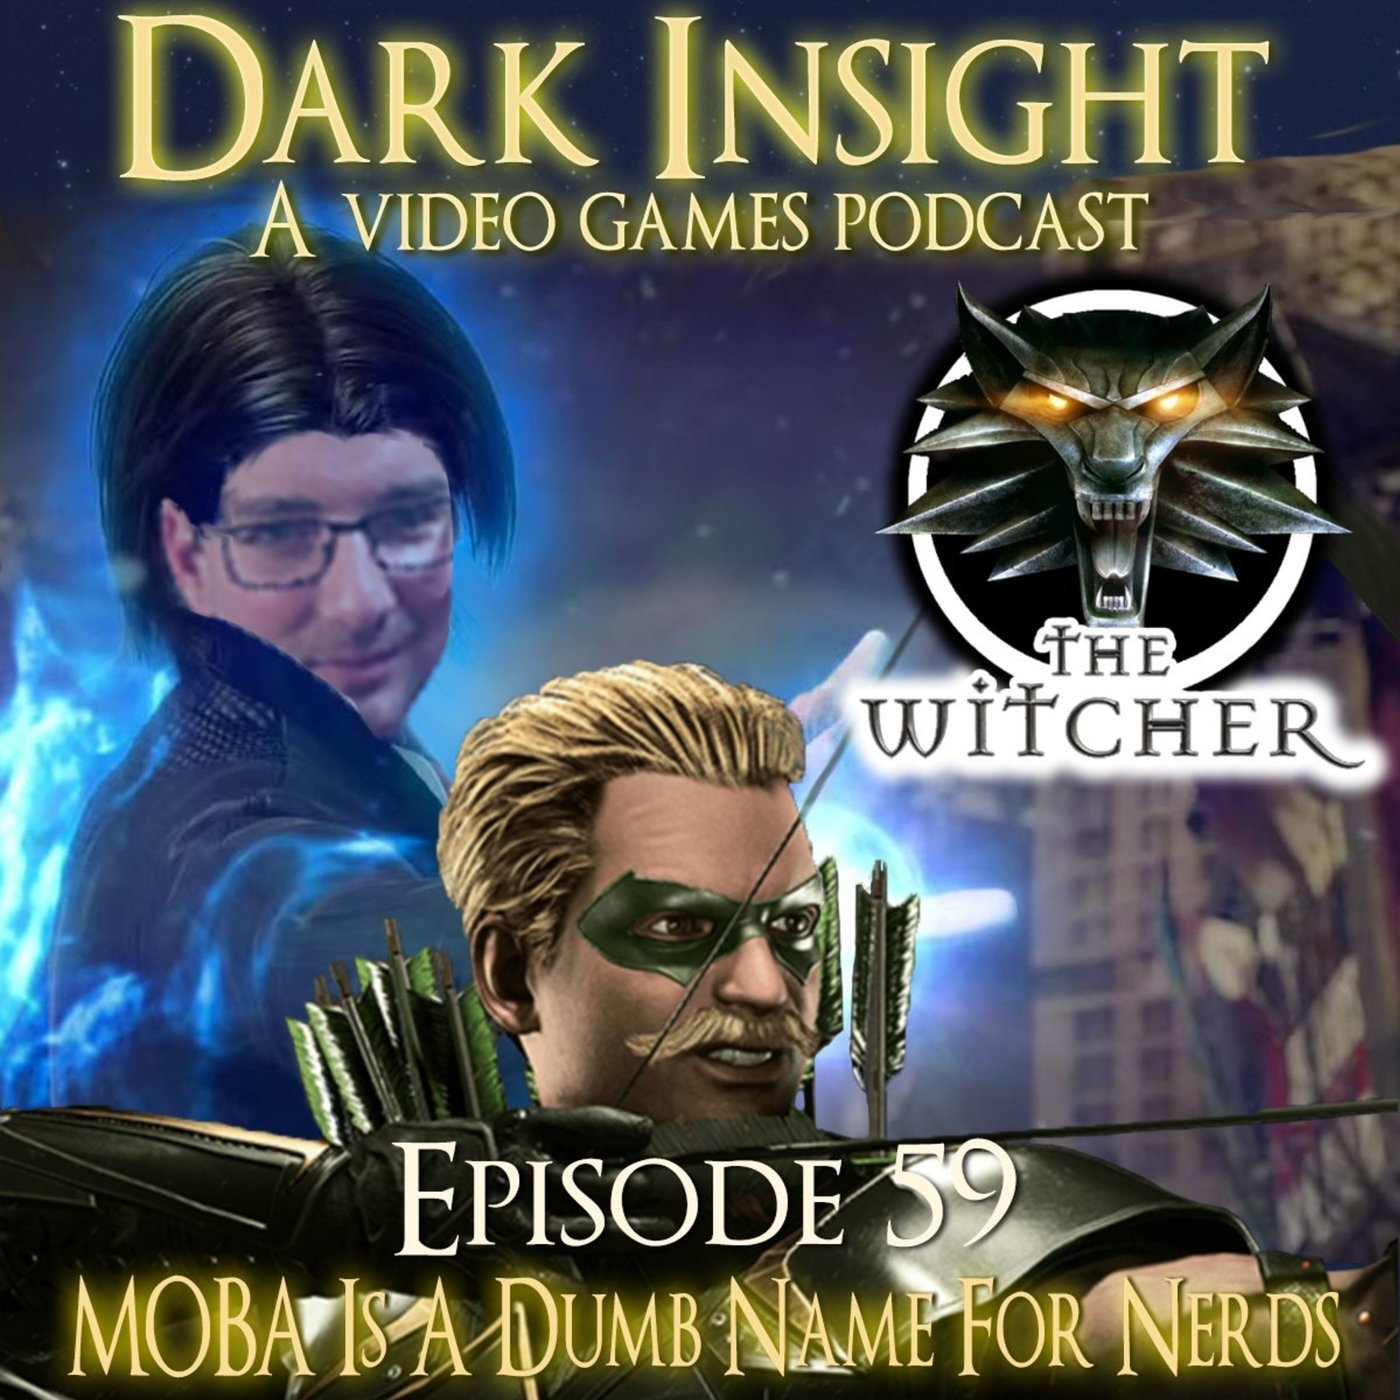 Dark Insight 59: MOBA Is A Dumb Name For Nerds